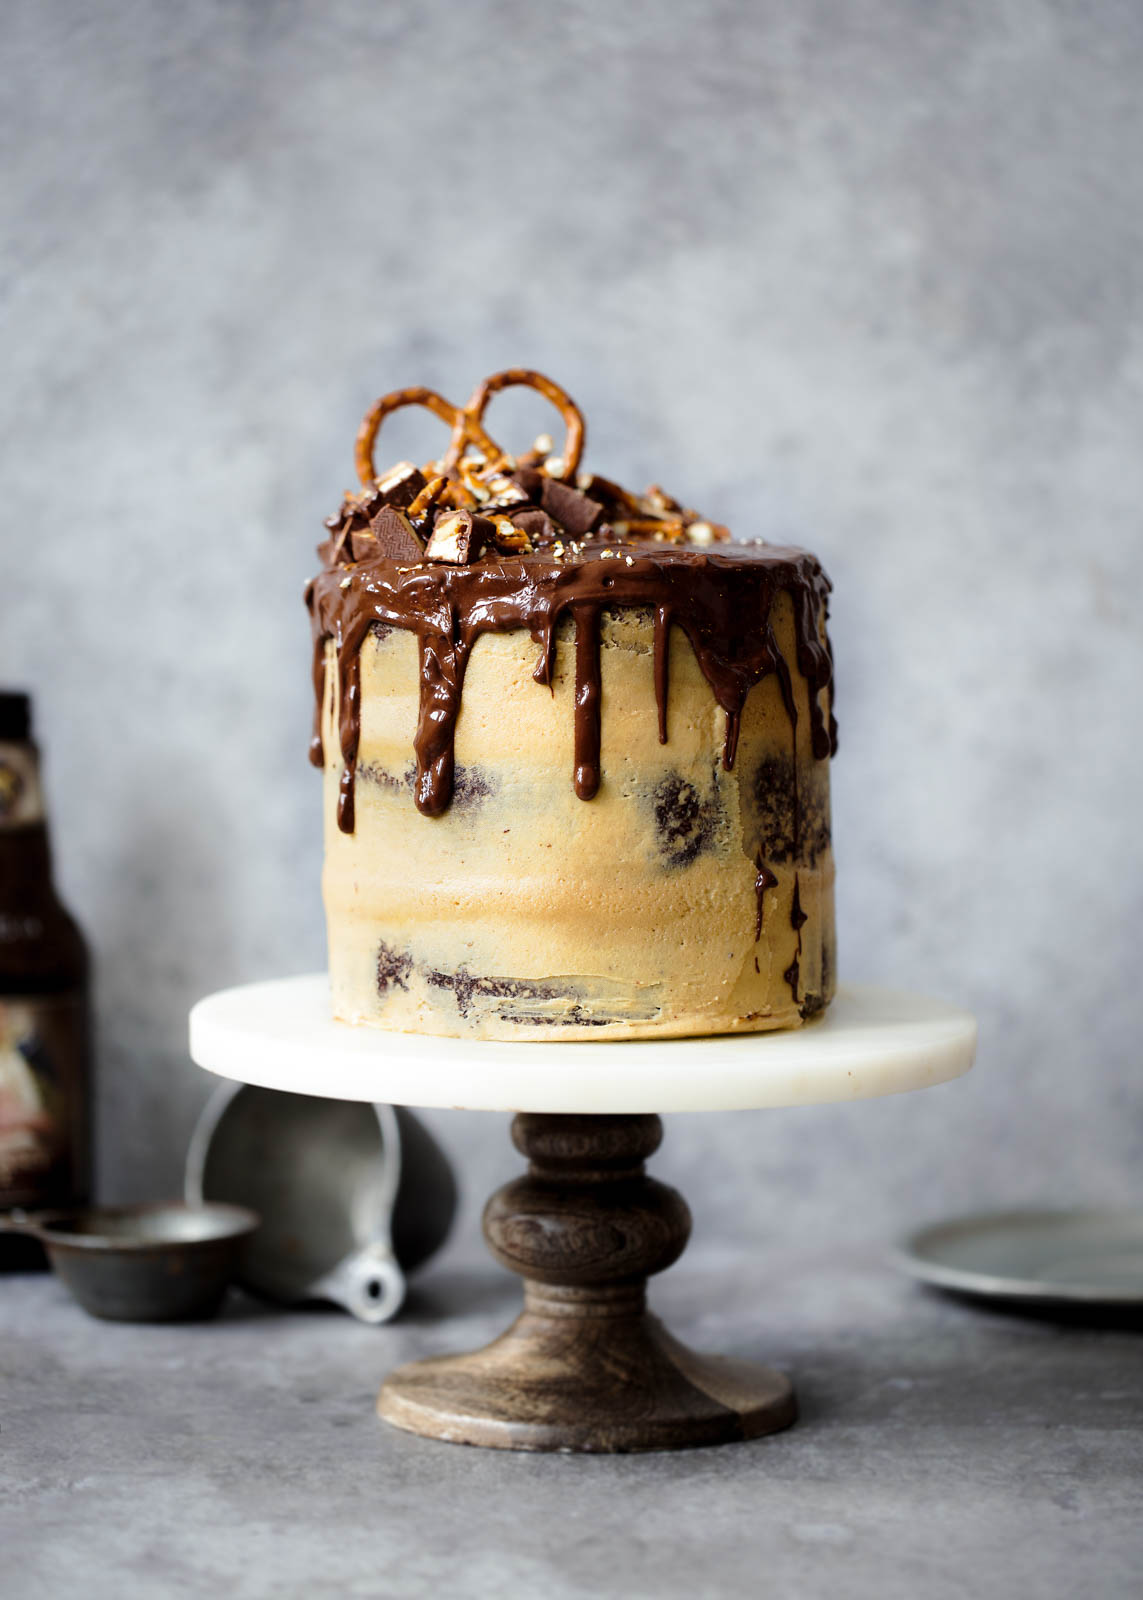 Peanut Butter Chocolate Stout Cake